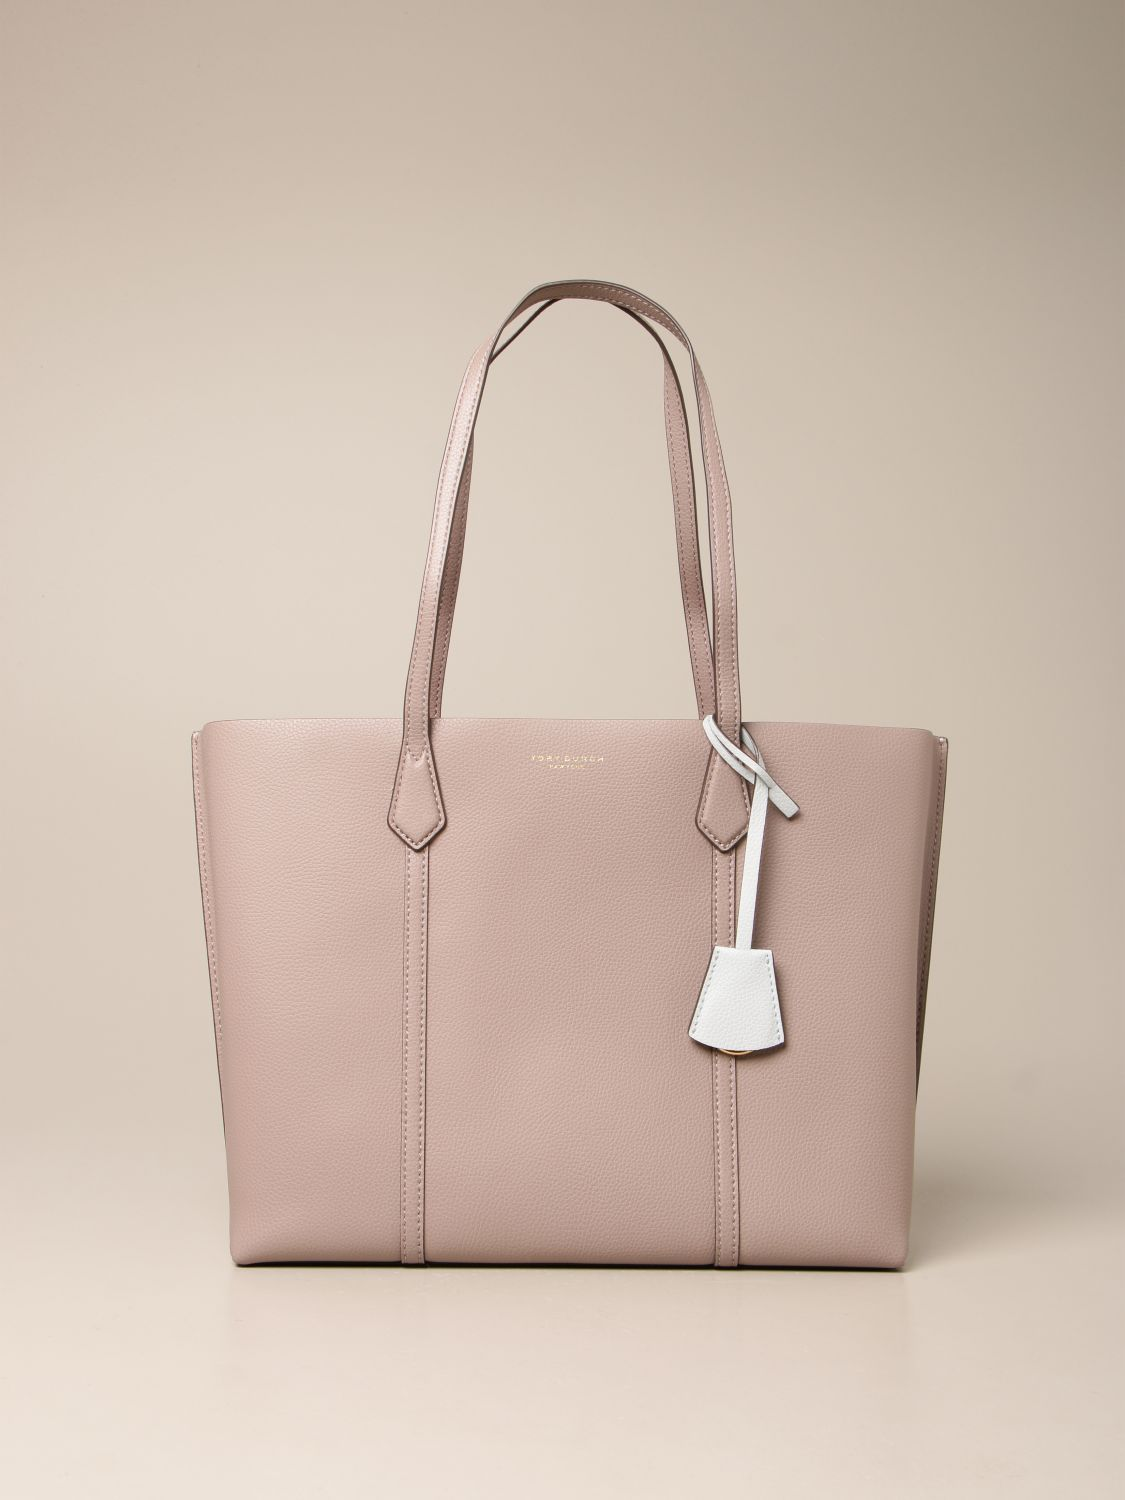 Handbag Tory Burch: Perry Tory Burch bag in textured leather grey 1